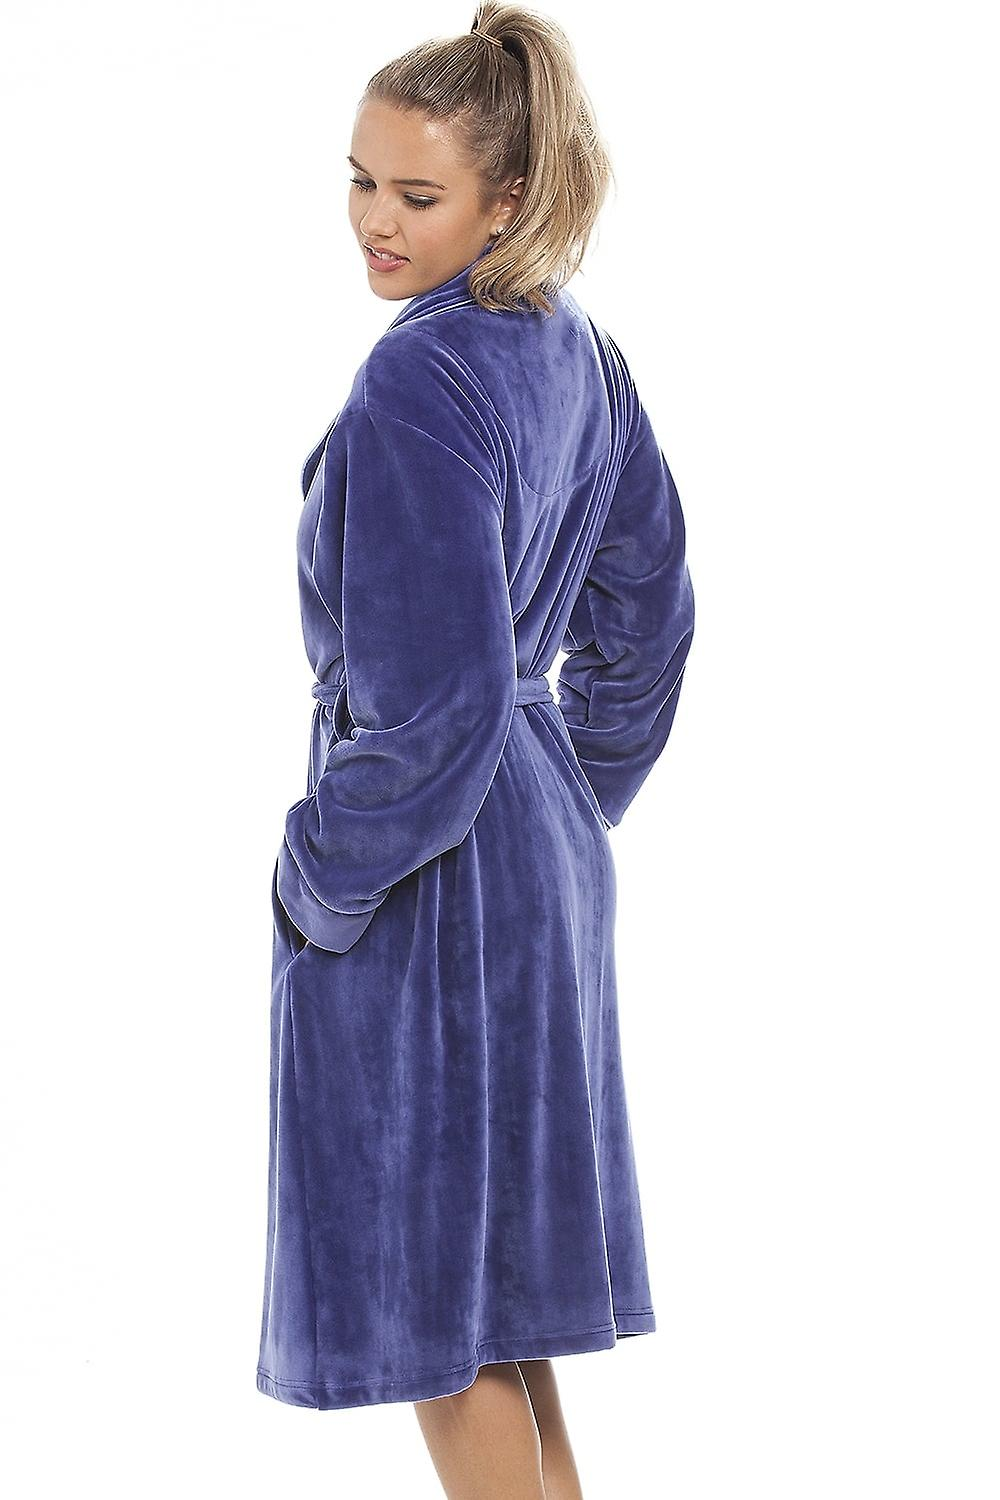 Camille Luxurious Heavy Weight Soft Purple Velour Dressing Gown | Fruugo